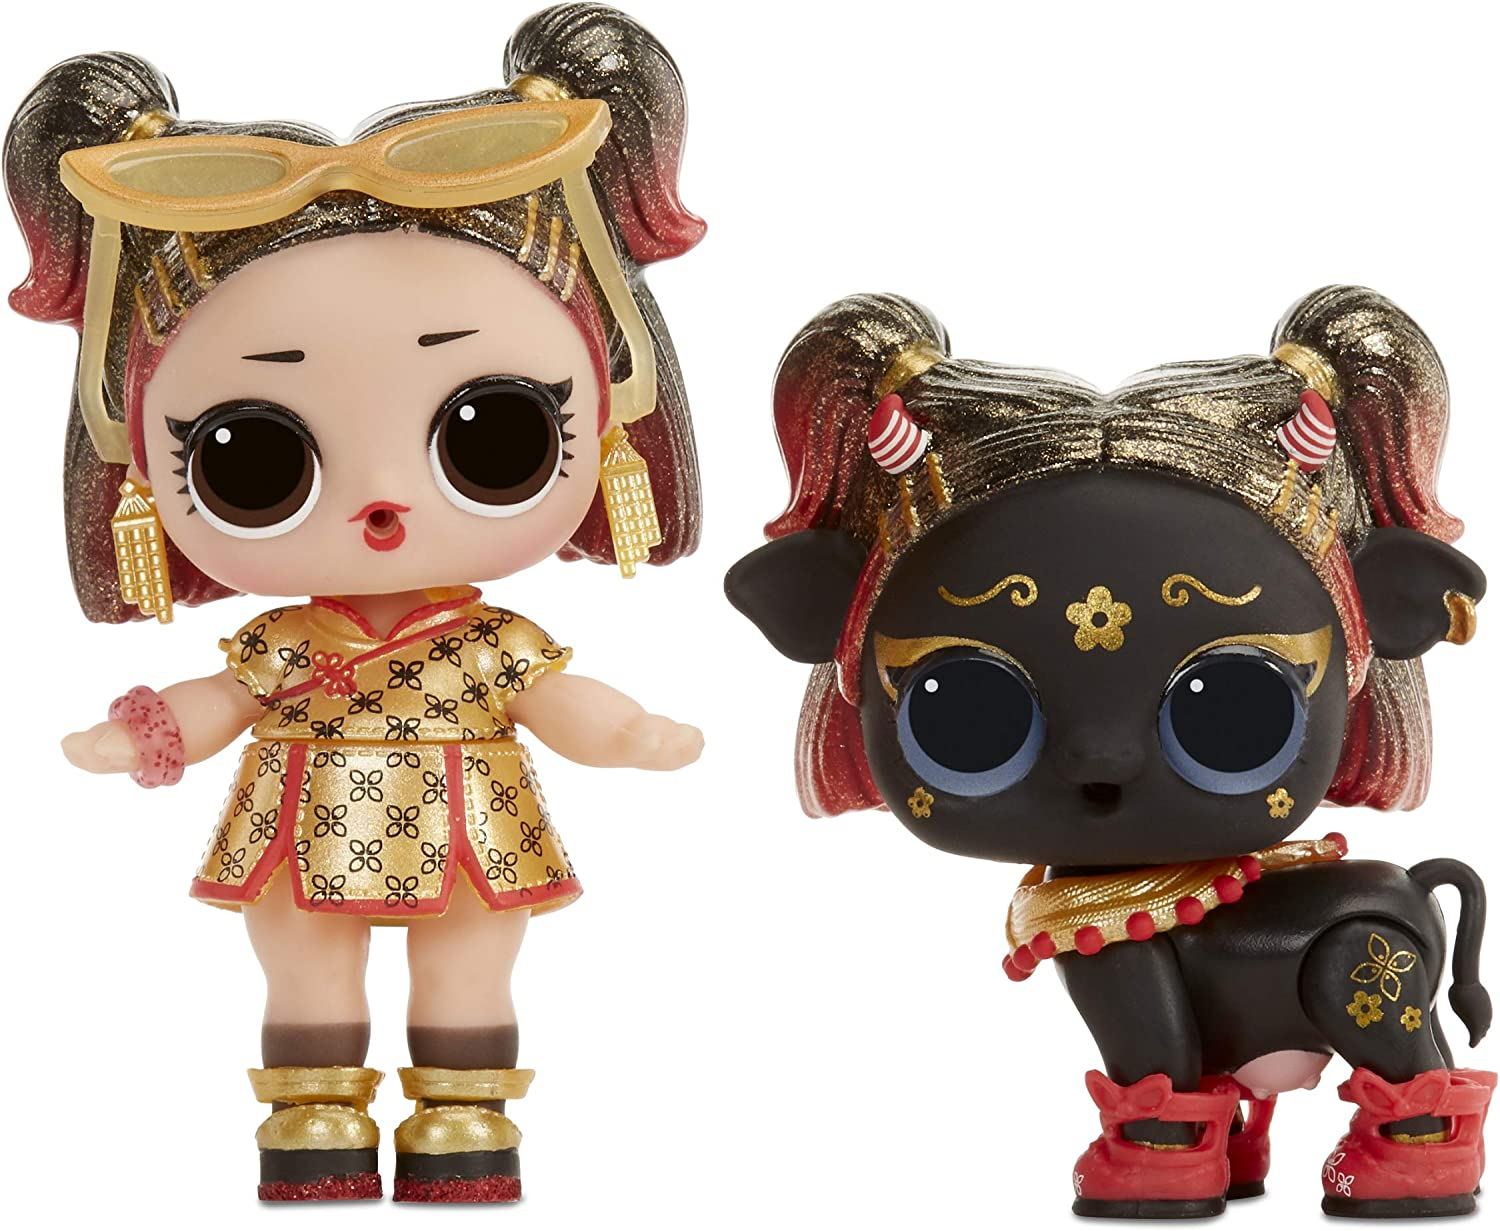 Limited Ed Lol Surprise Chinese Girl GOLDEN OX 2021 YEAR OF THE OX Set Of 2